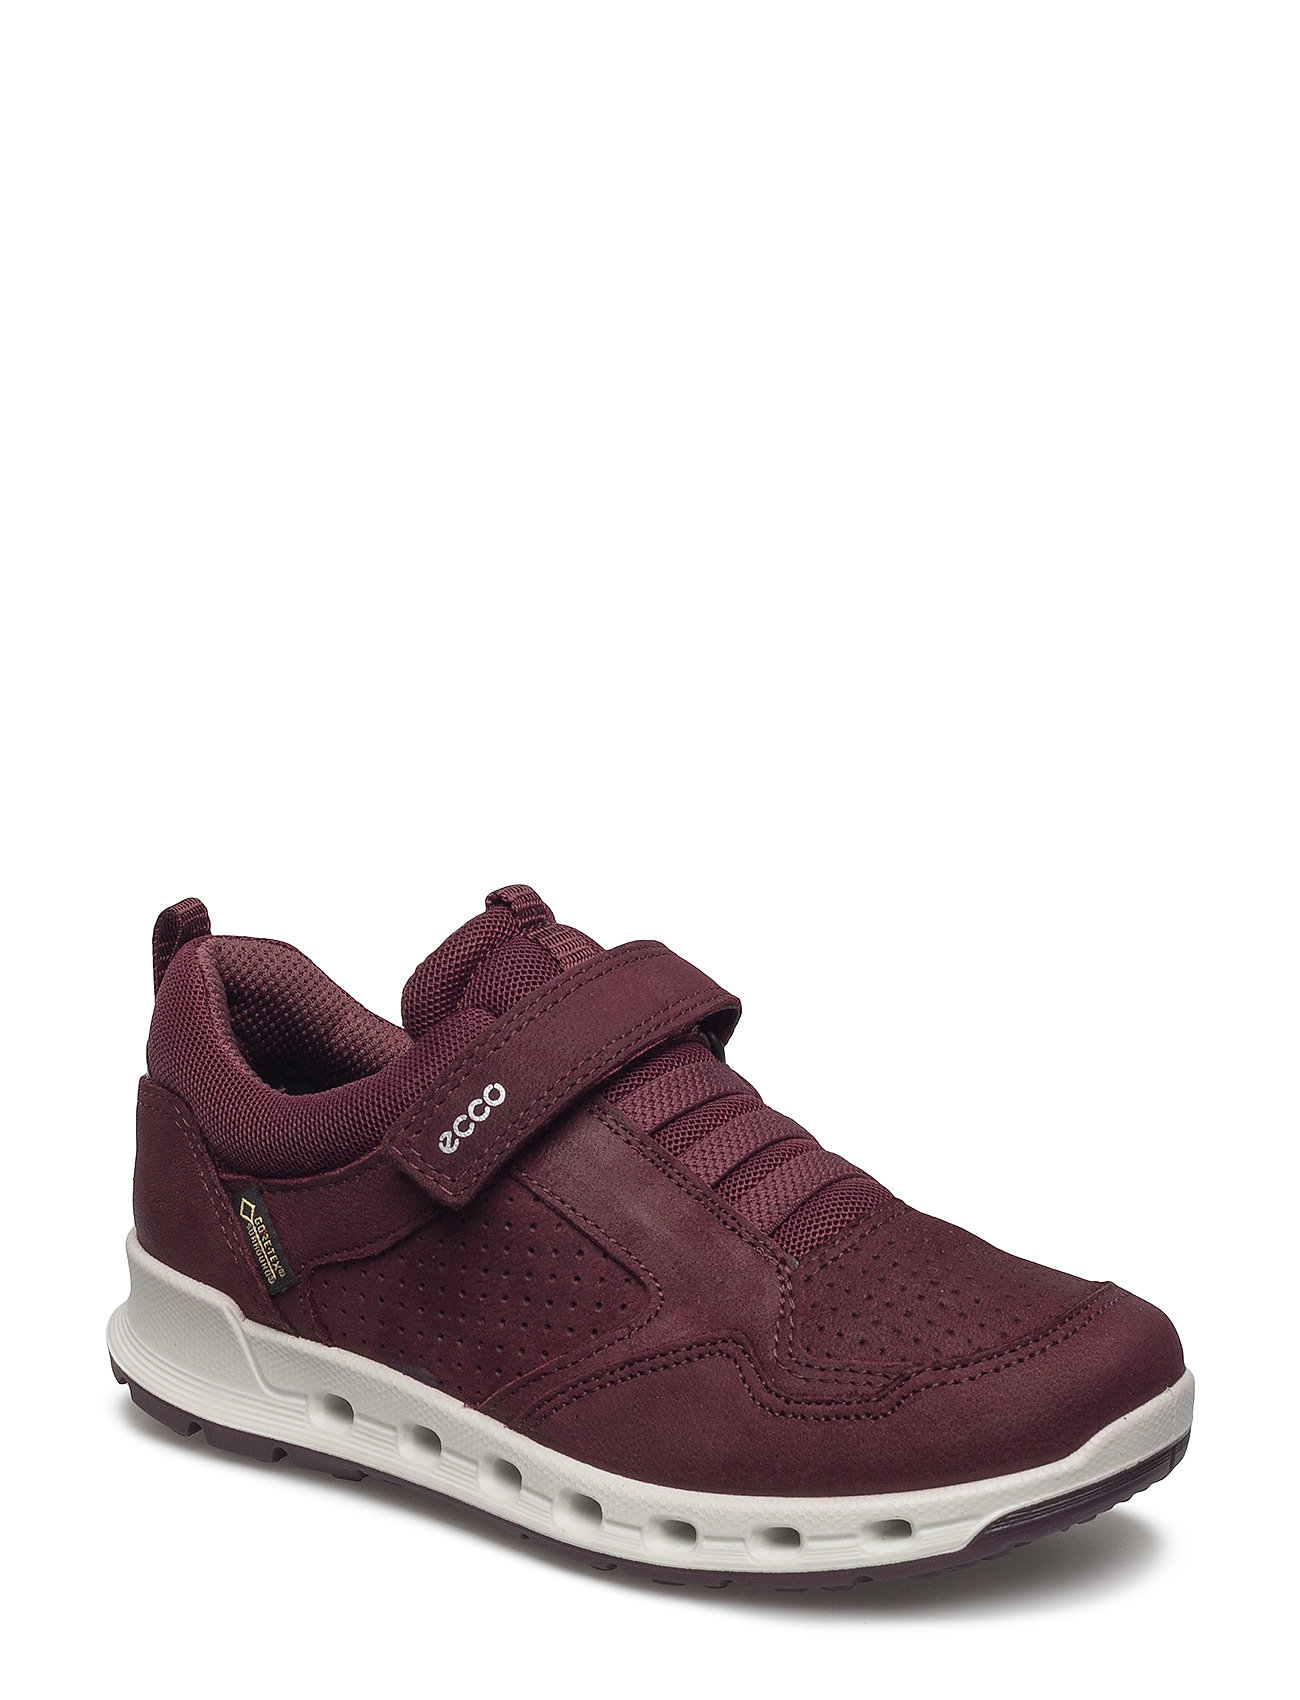 85992ea3601 Cool Kids (Bordeaux) (£56) - ECCO - | Boozt.com